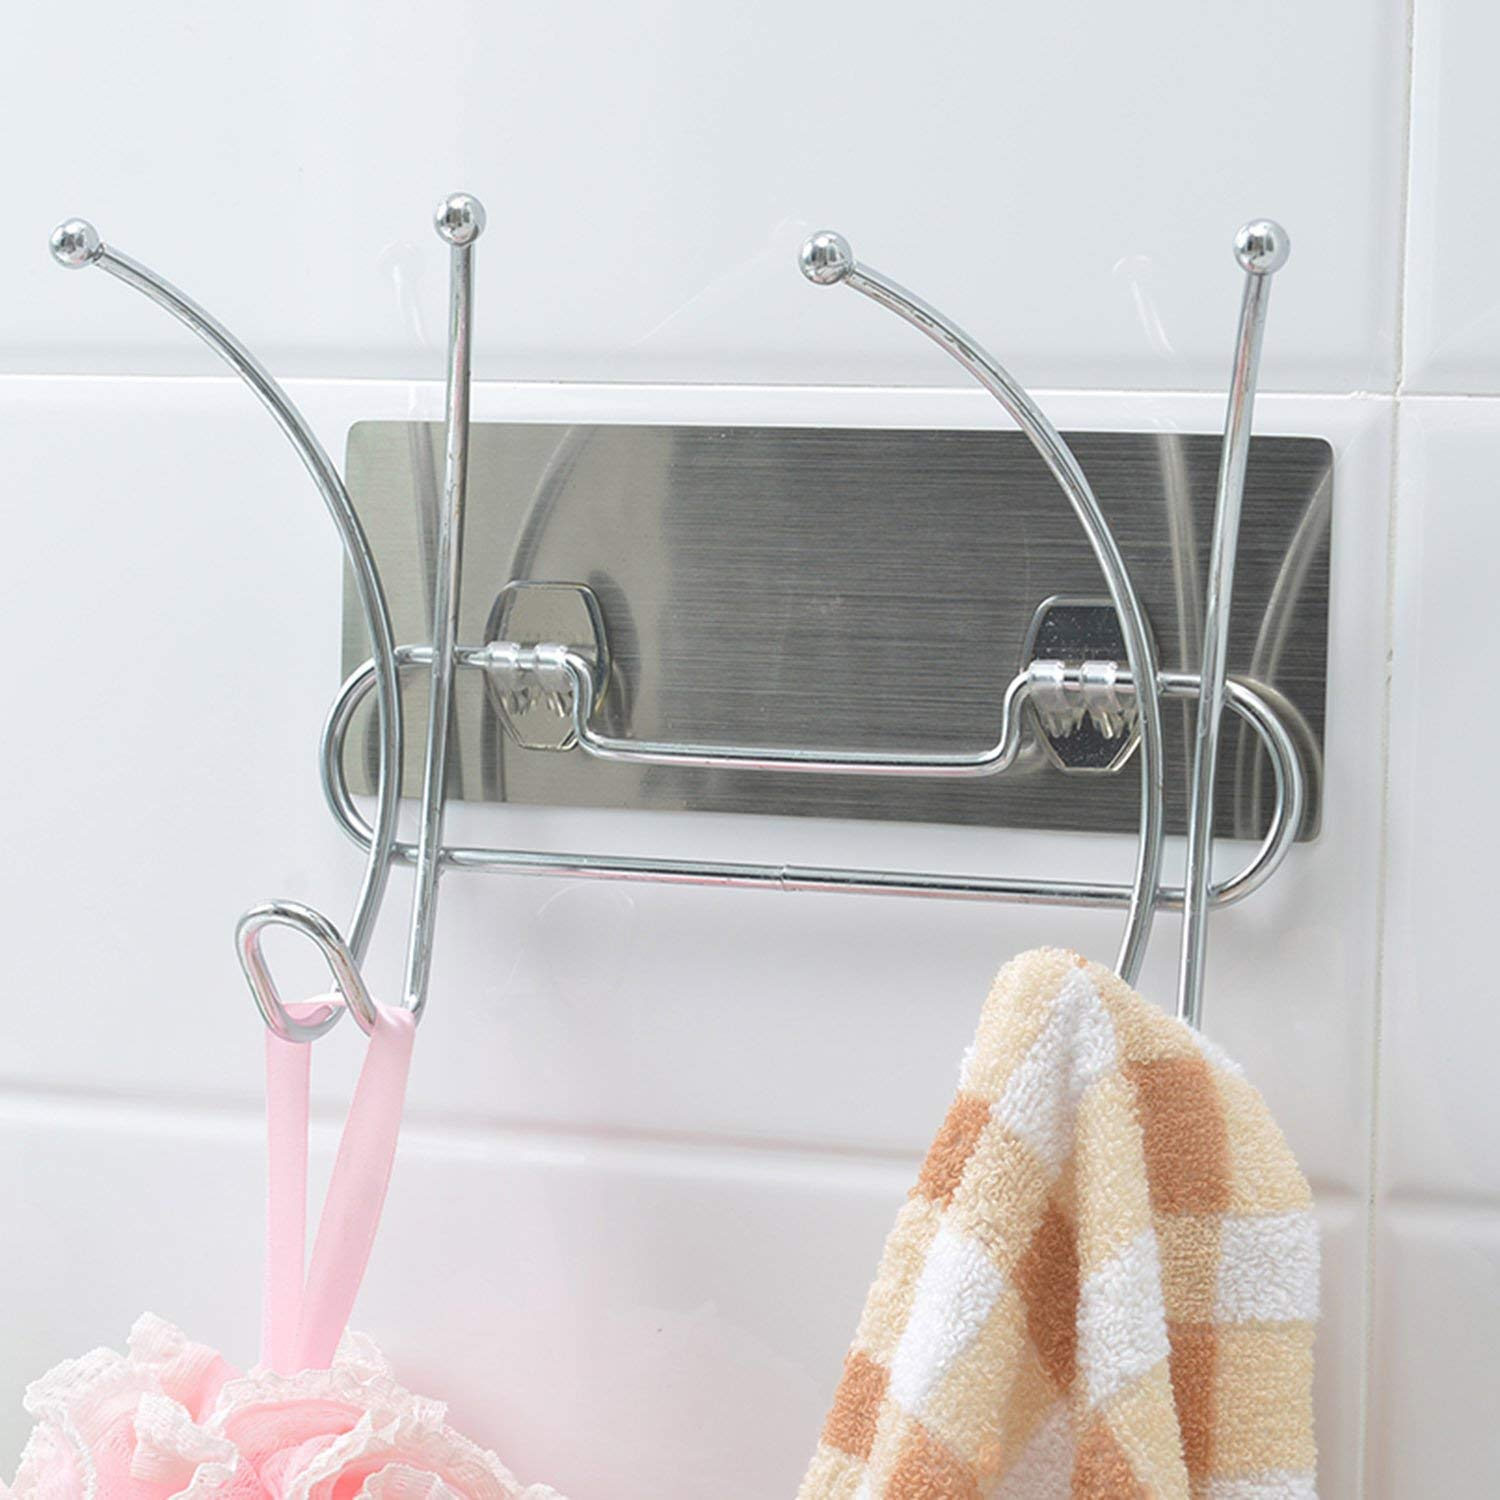 AND007382. Bathroom Towel Hanger/Hooks for Hanging Clothes